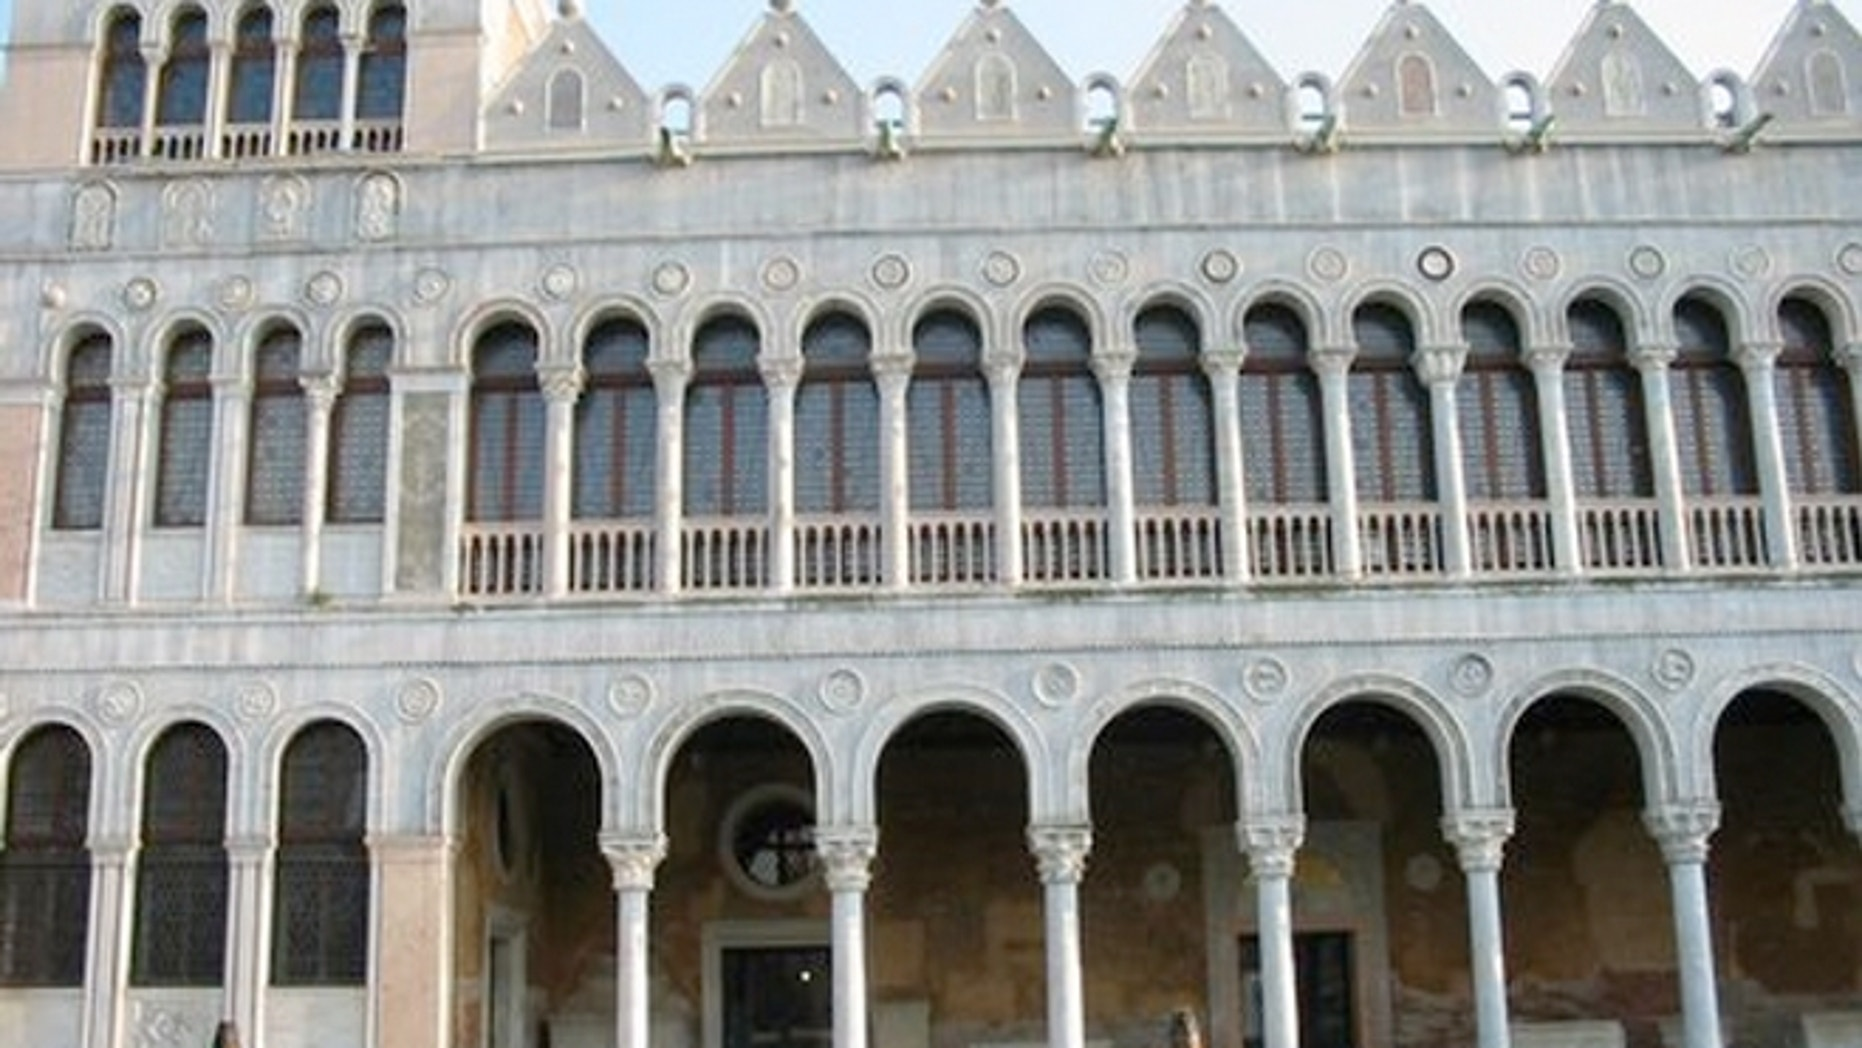 The Palazzo Barbarigo in Venice is a 16th-century building converted in boutique hotel on the Grand Canal.